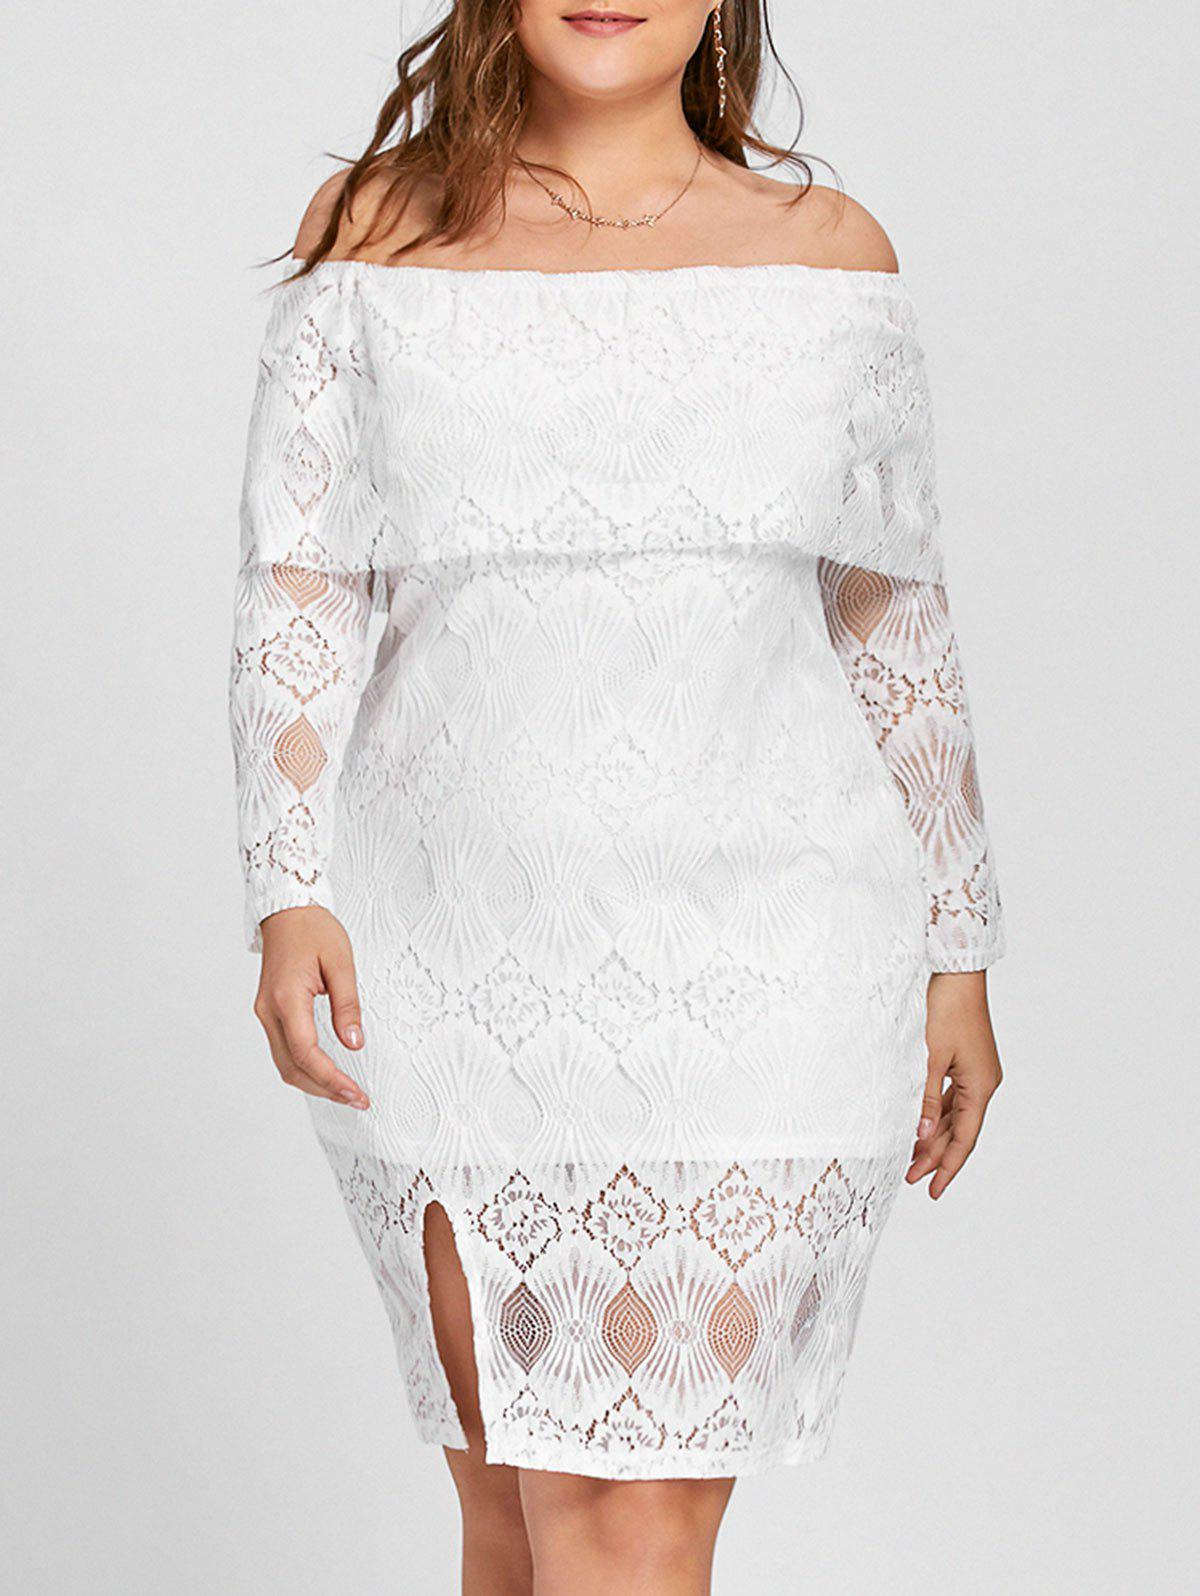 Plus Size Lace Off The Shoulder Flounce DressWOMEN<br><br>Size: 3XL; Color: WHITE; Style: Casual; Material: Cotton,Polyester; Silhouette: Sheath; Dresses Length: Knee-Length; Neckline: Off The Shoulder; Sleeve Length: Long Sleeves; Embellishment: Lace; Pattern Type: Solid; With Belt: No; Season: Fall; Weight: 0.4350kg; Package Contents: 1 x Dress;